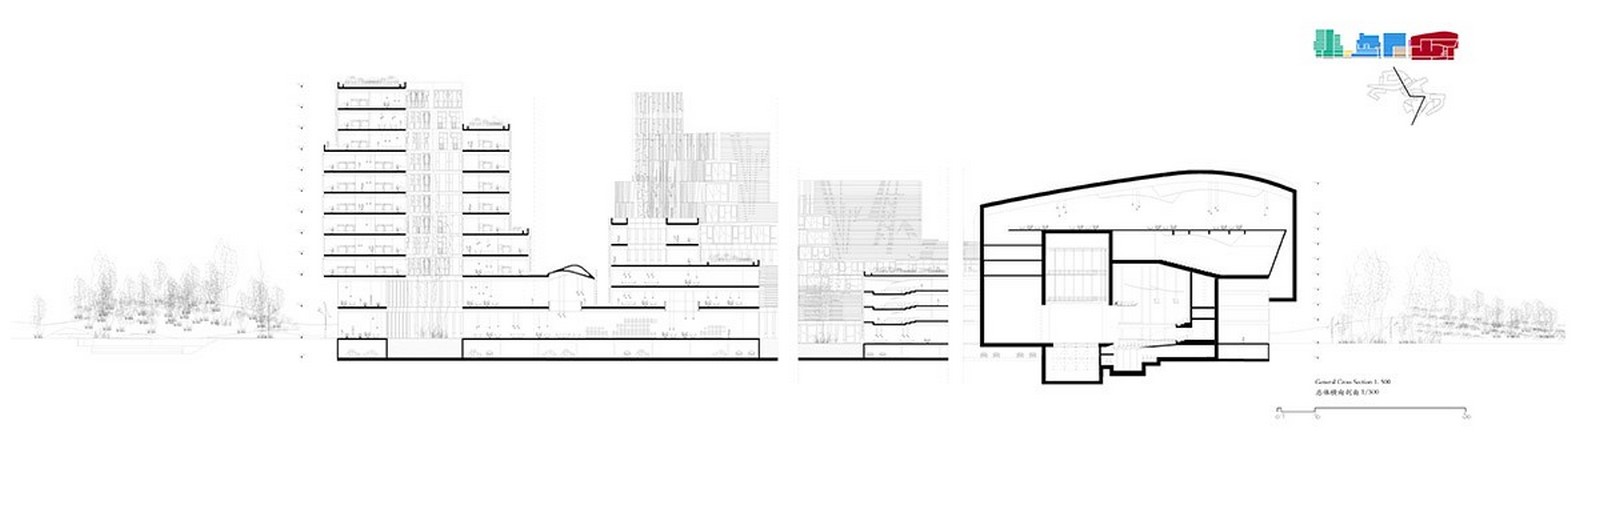 Competition to Design Shenzhen's Conservatory of Music won by Miralles Tagliabue EMBT - Sheet9